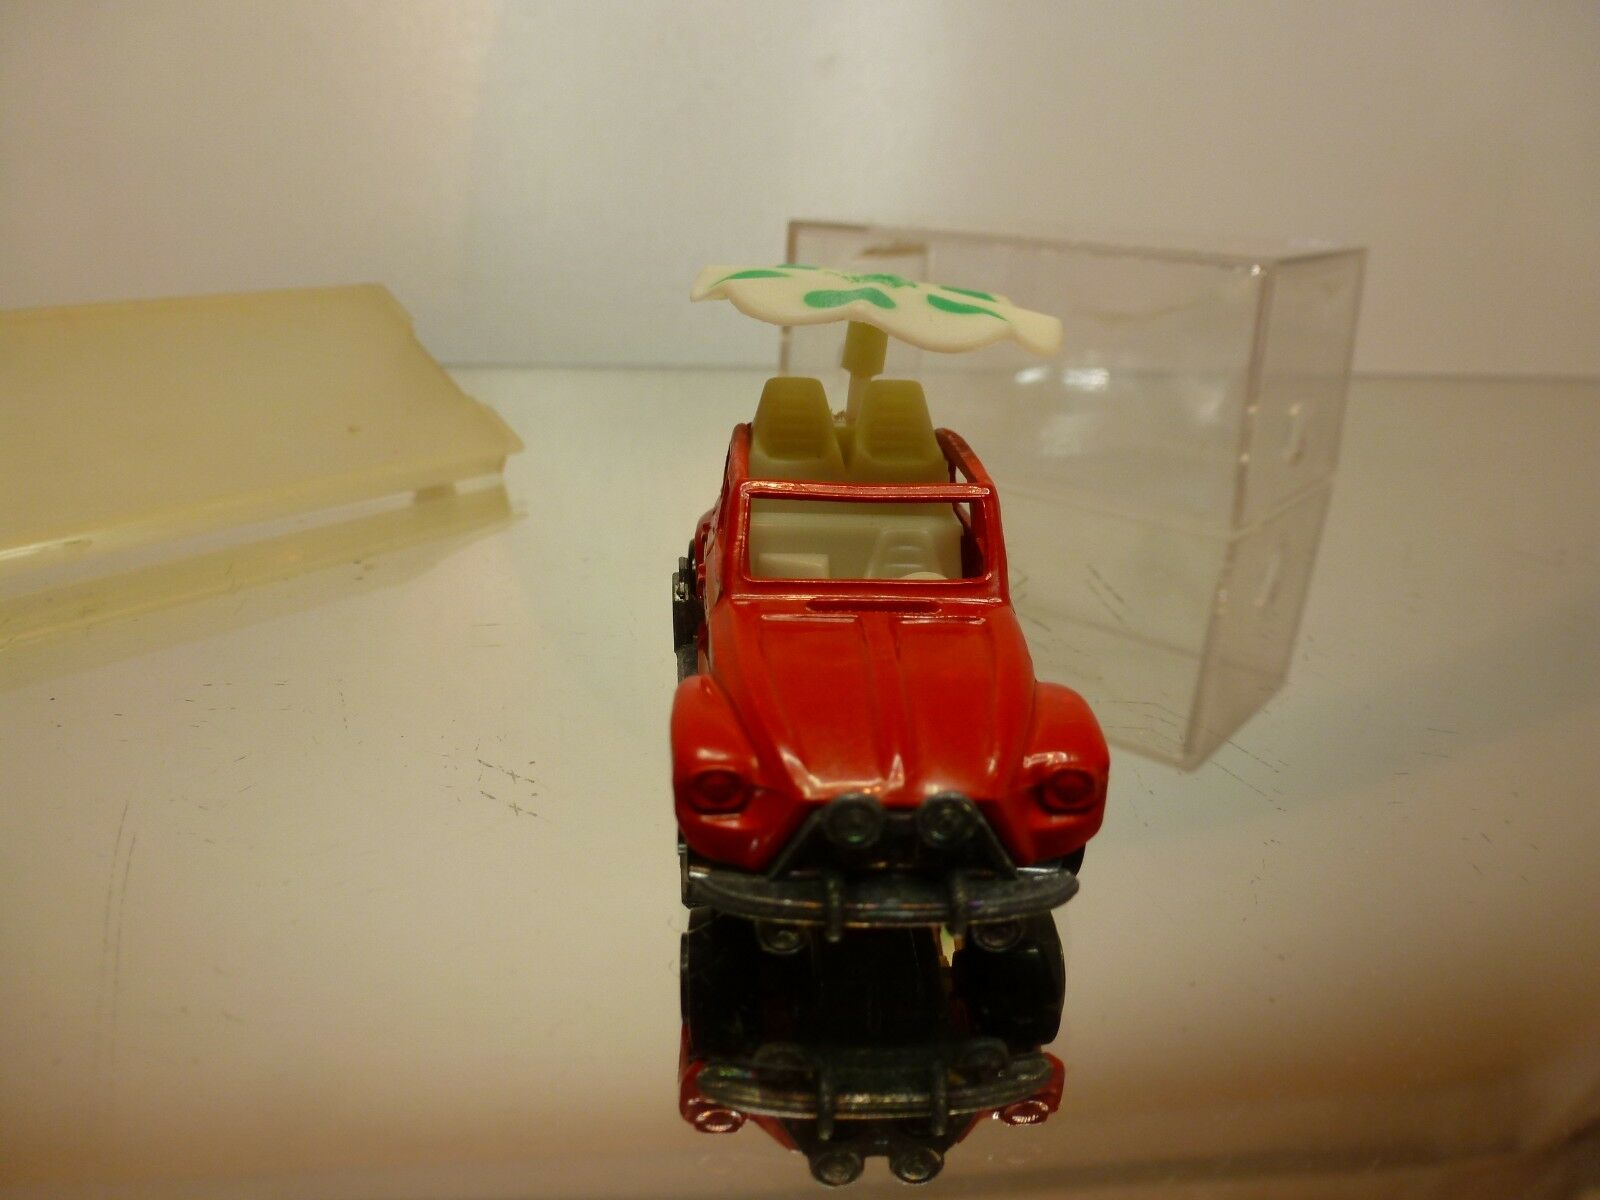 MAJORETTE MAJORETTE MAJORETTE 237 CITROEN DYANE MAHARADJAN - RED 1 60 - GOOD CONDITION IN BOX 62bbdd